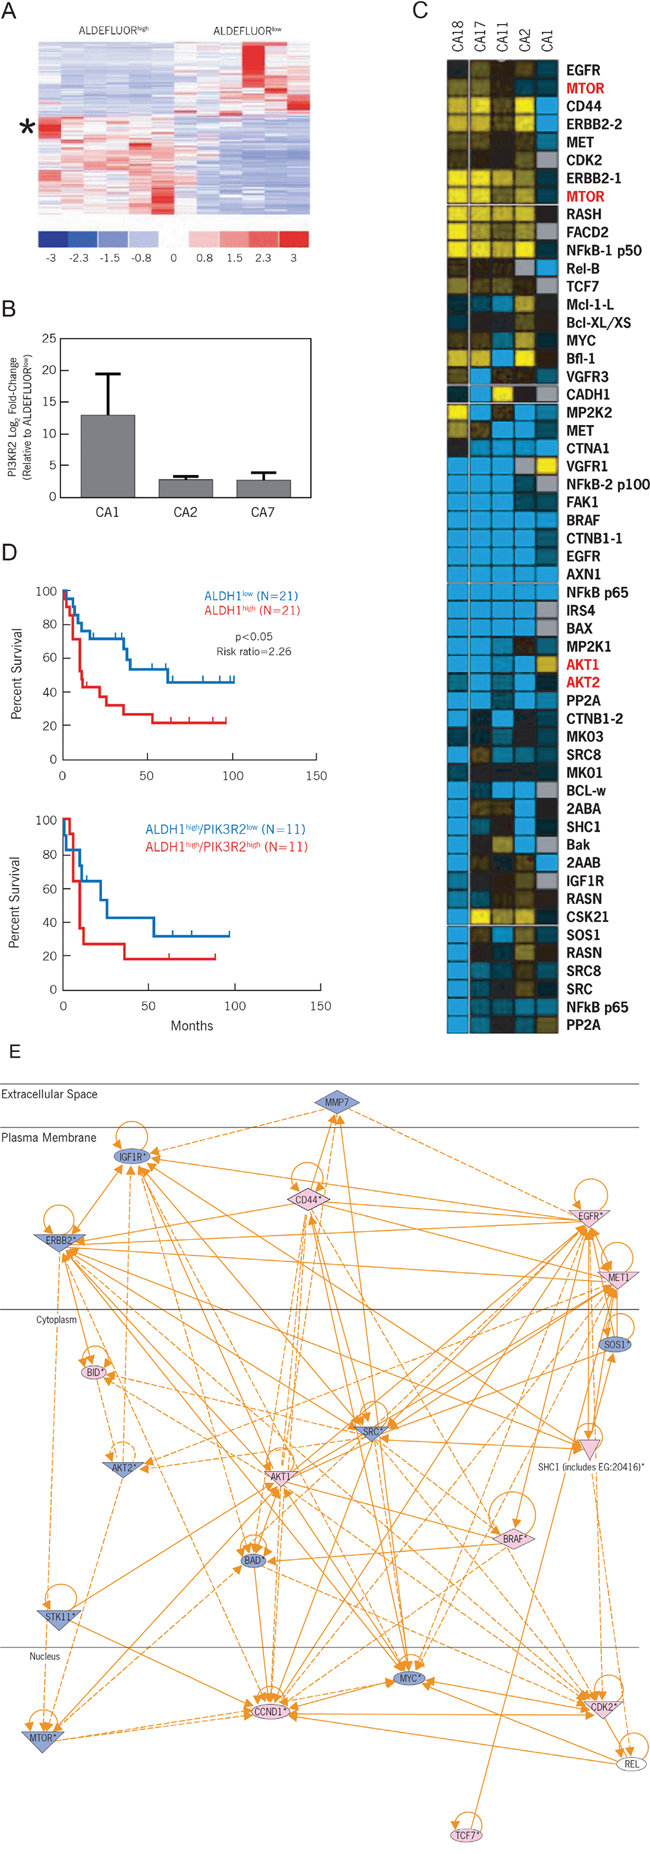 The PI3K/Akt/mTOR pathway is differentially expressed between ALDEFLUORhigh CCSCs and ALDEFLUORlow progenitor cells.